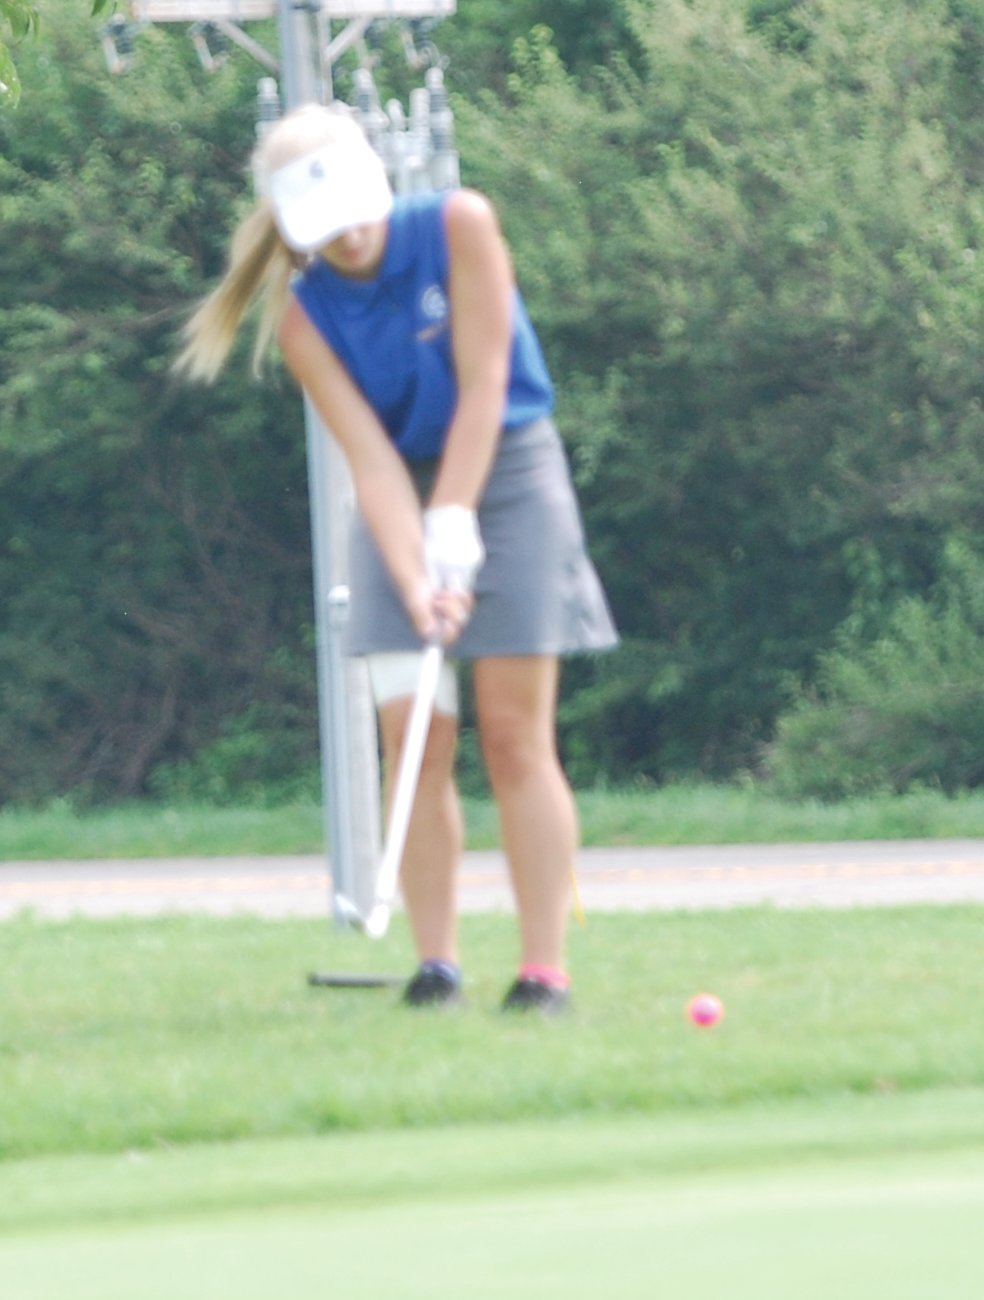 Crawfordsville's Sadie Walker chips a shot toward the hole during the Seeger Invite on Monday afternoon.